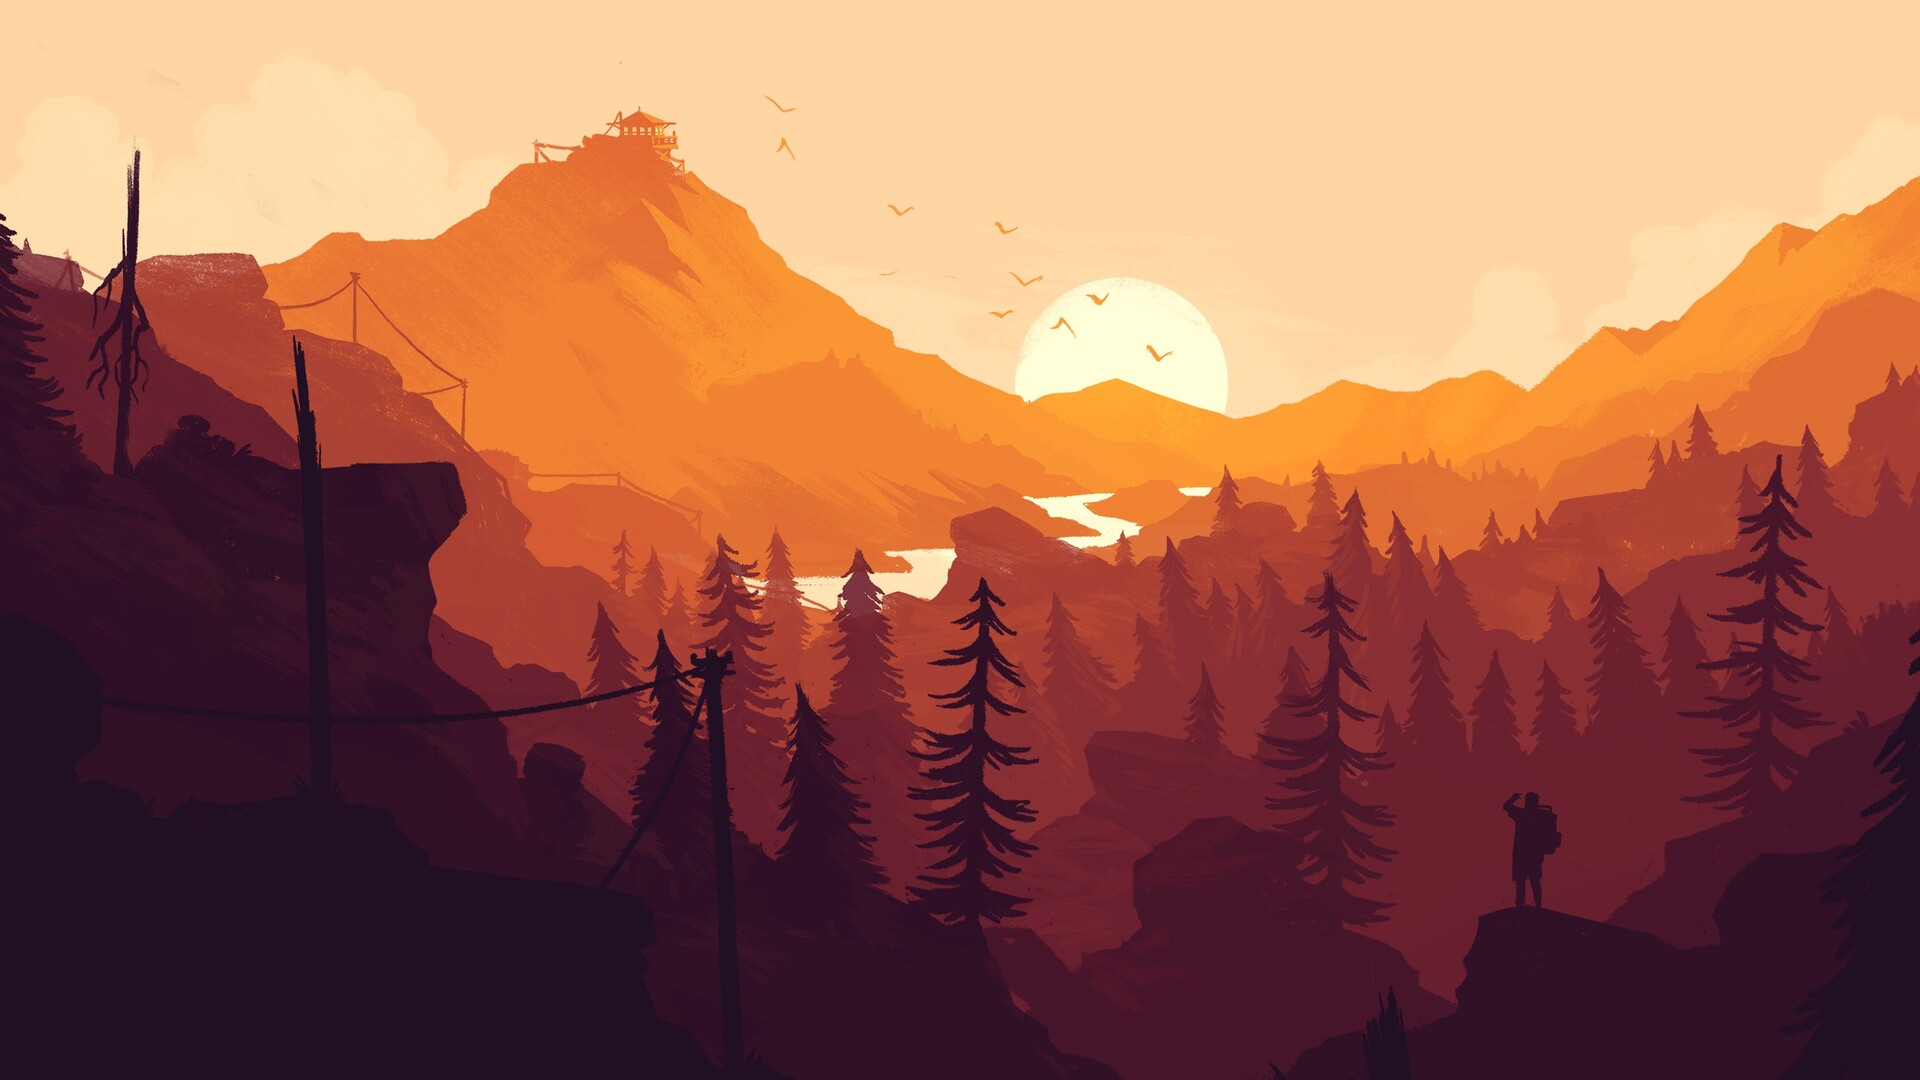 Cute Apple Logo Wallpaper 1920x1080 Firewatch Game Laptop Full Hd 1080p Hd 4k